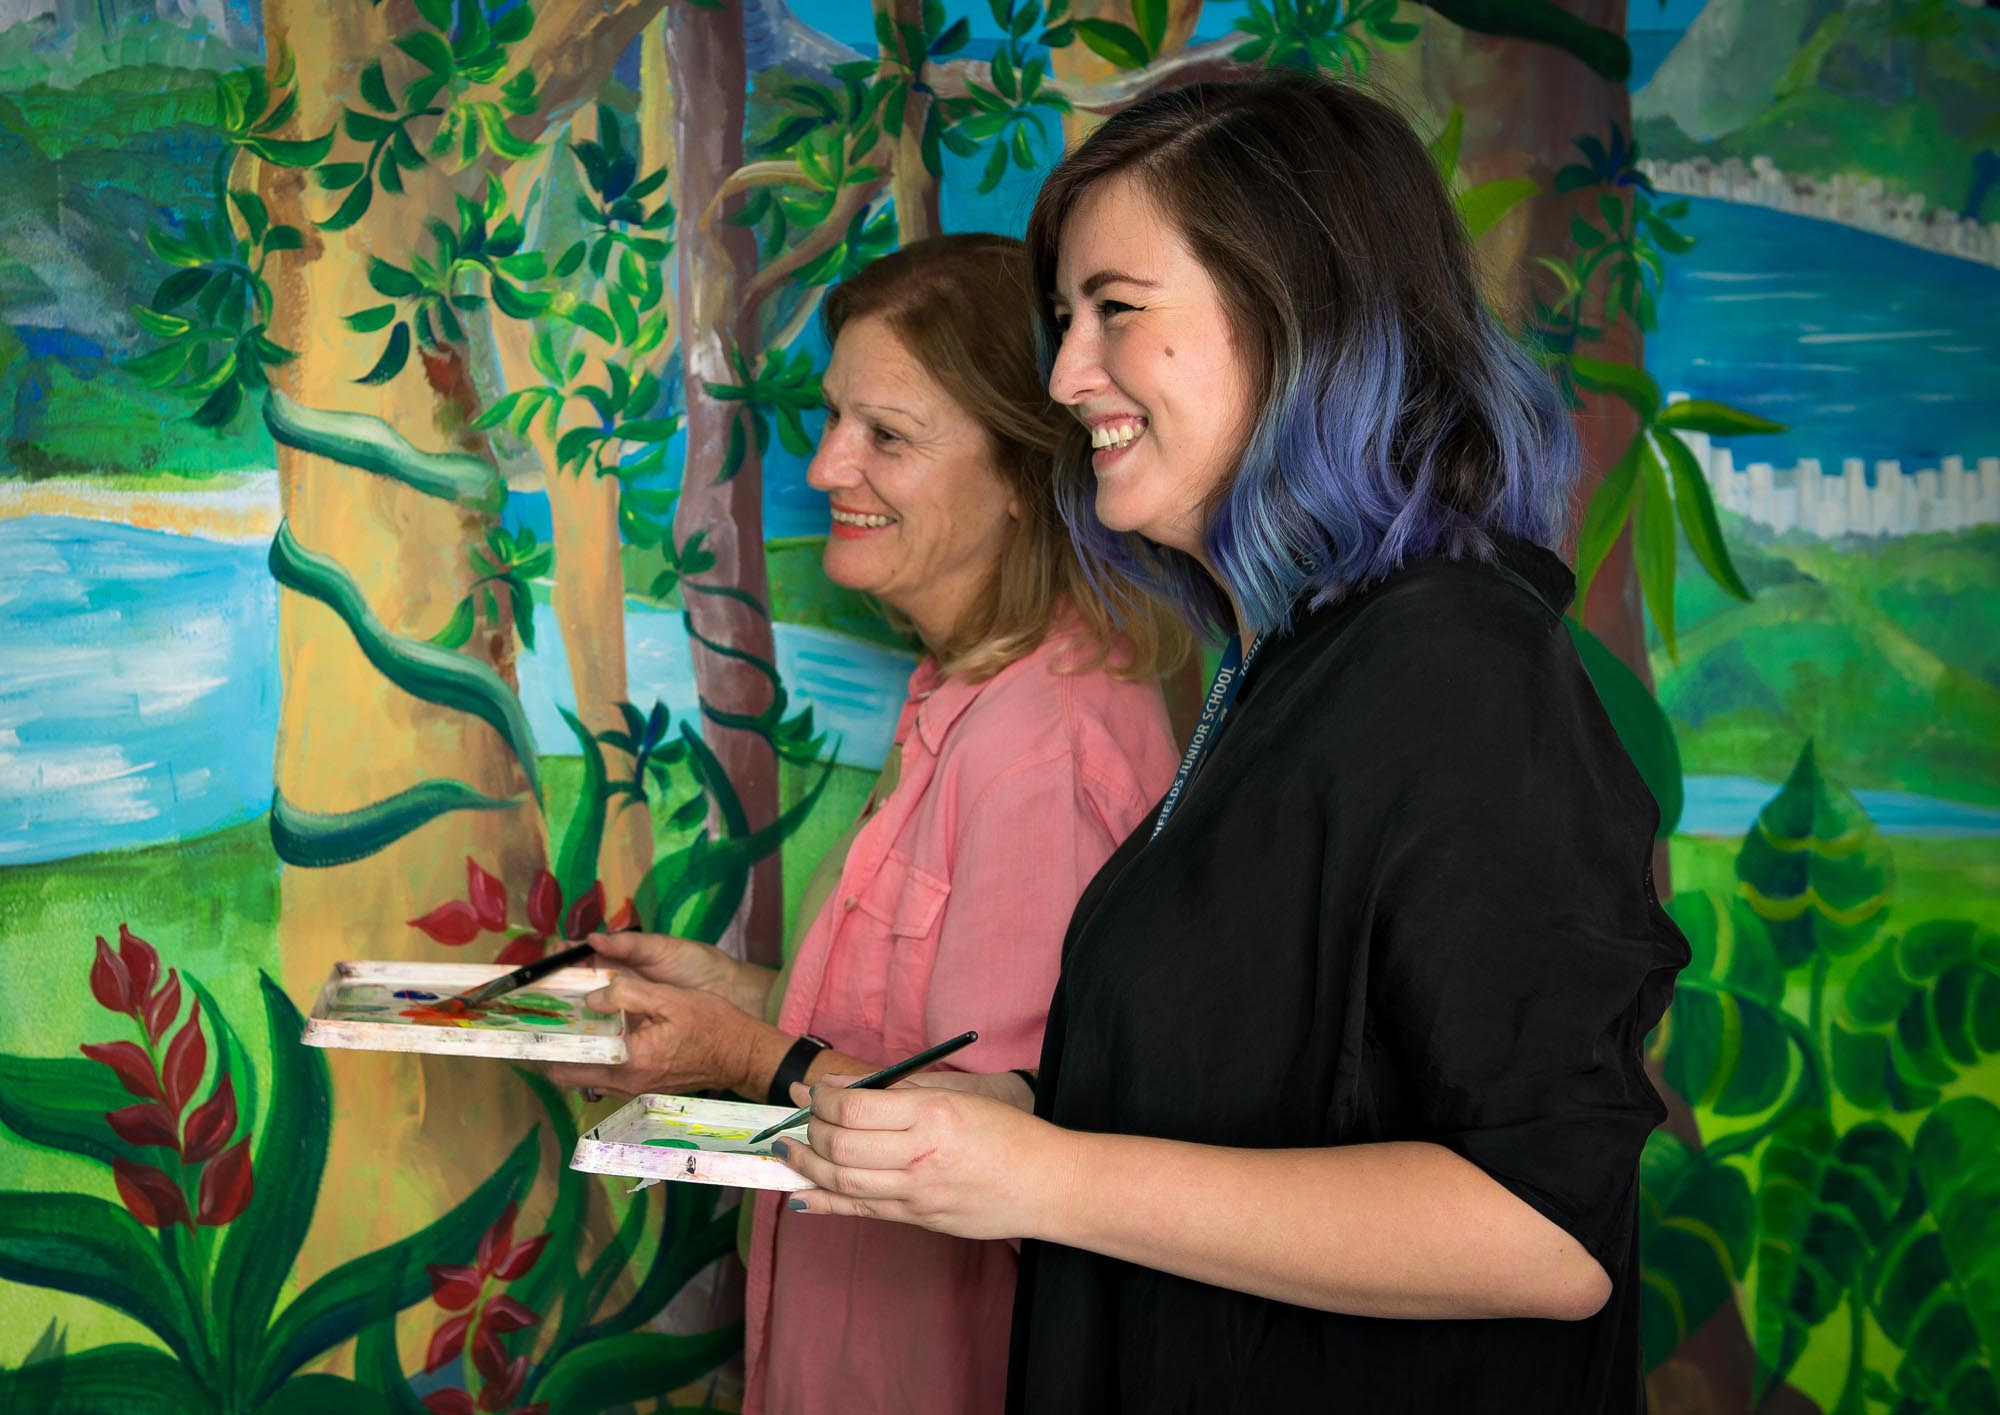 Mrs Thornton and Ms Garcia holding brushes and paint next to wall painting